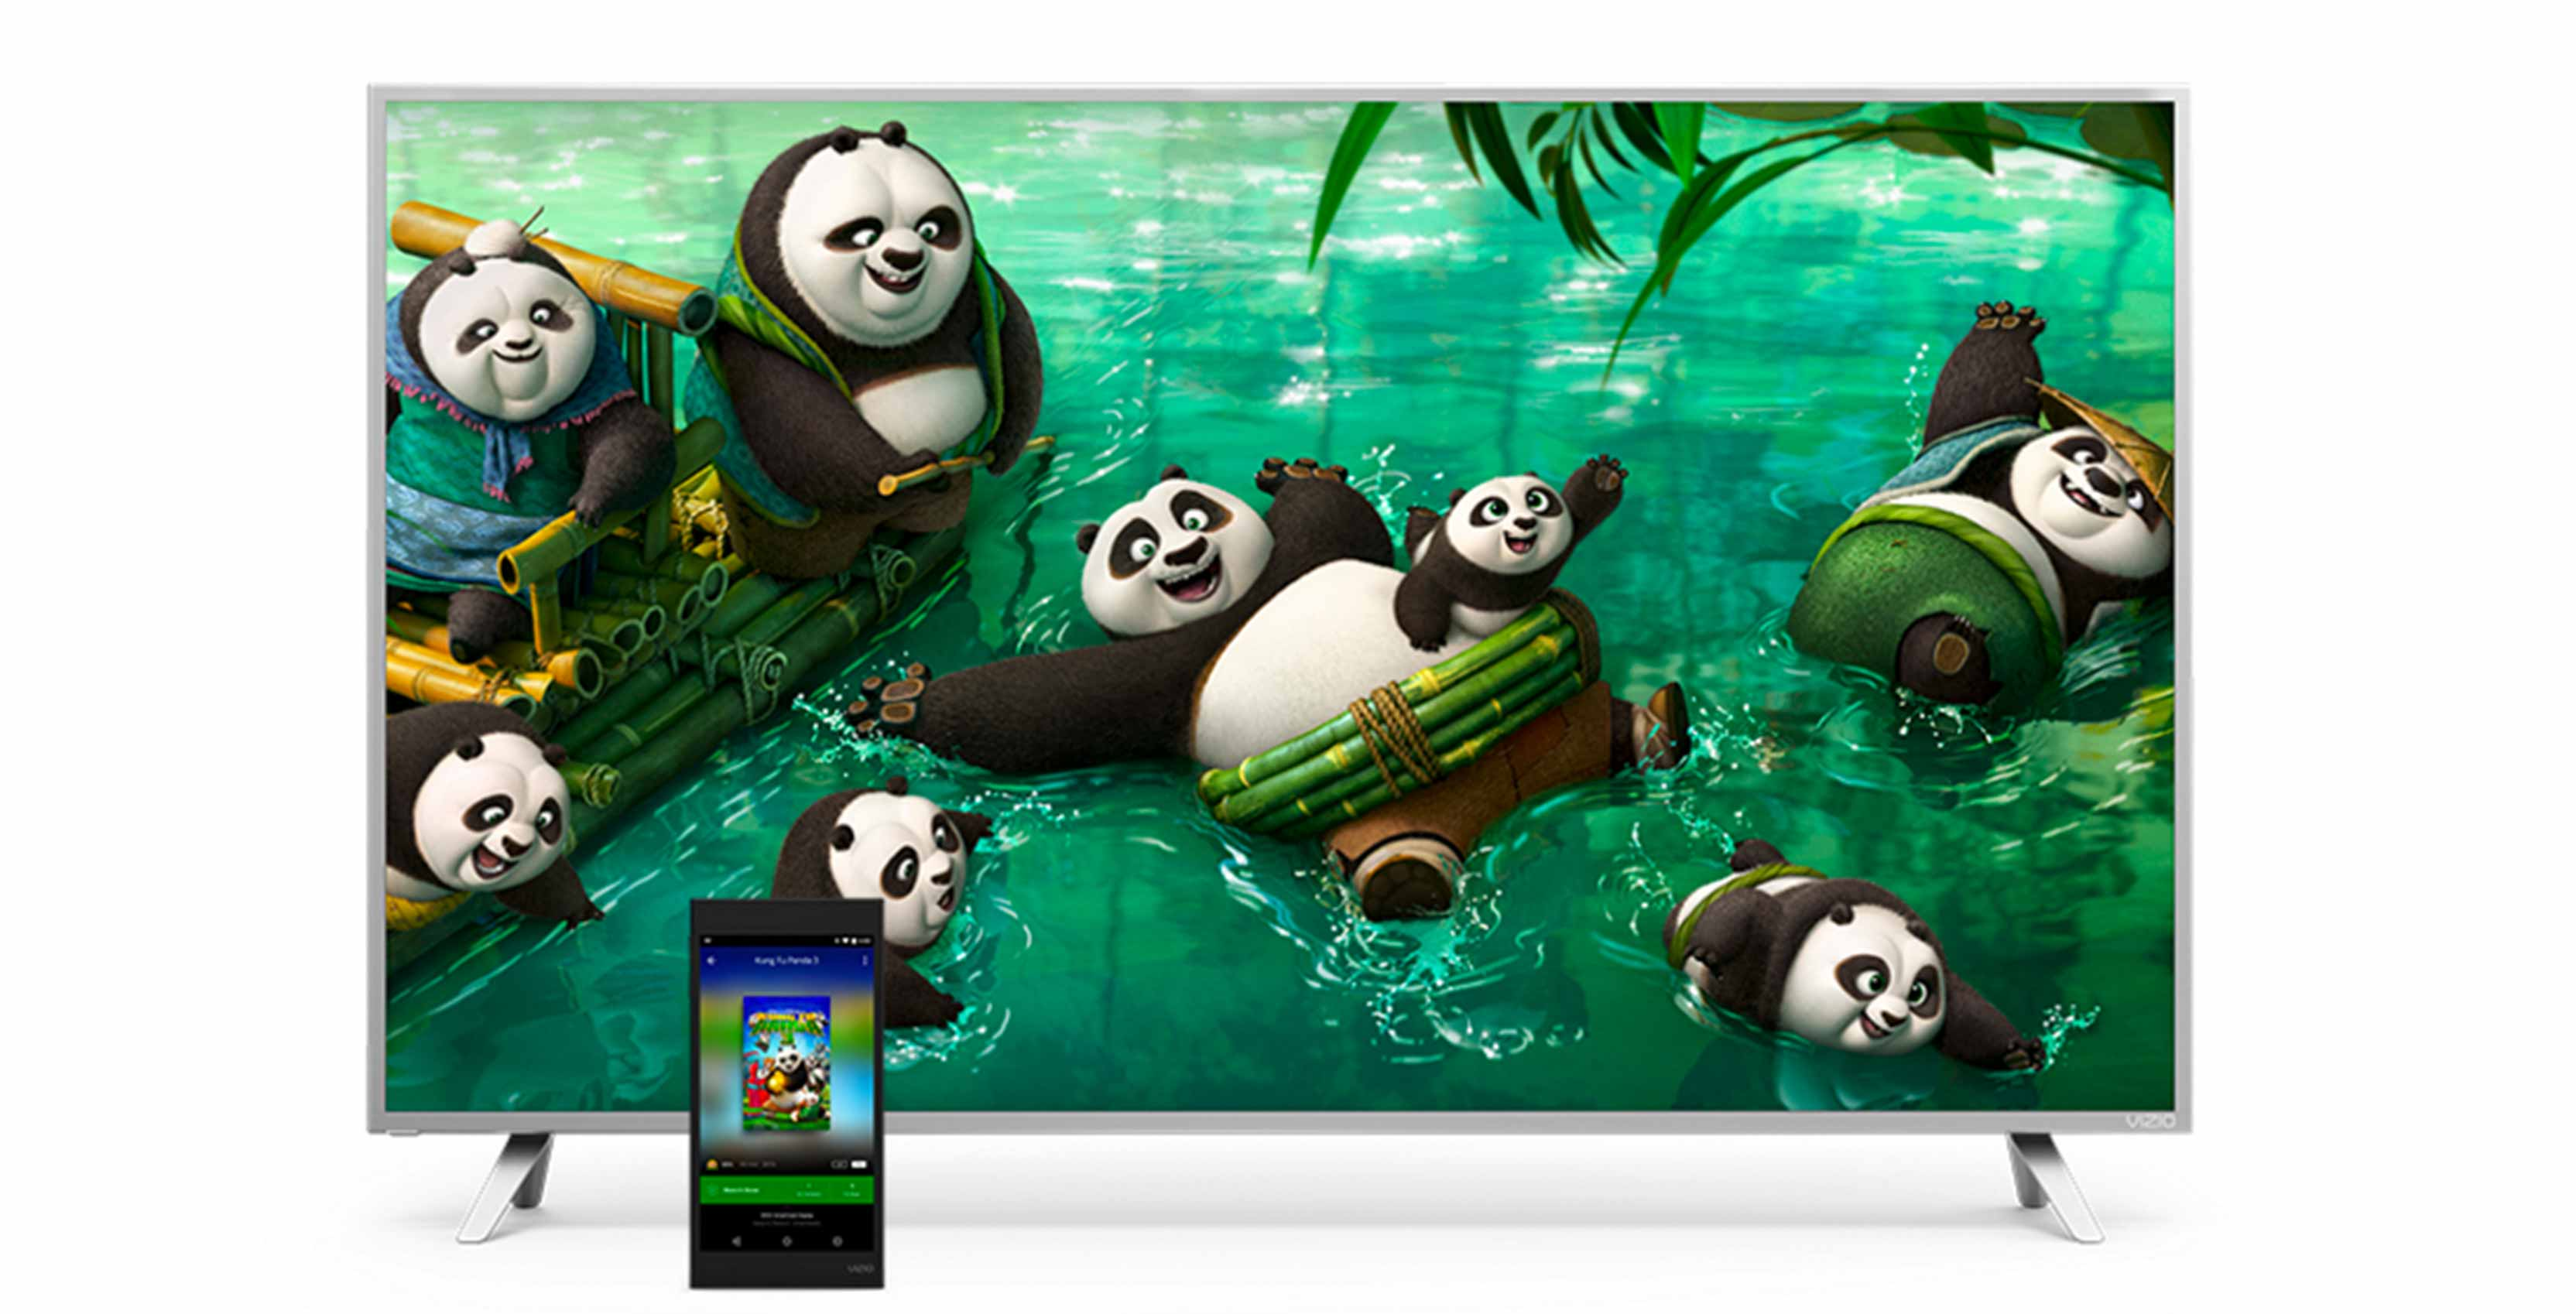 Vizio P-Series television with Kung-Fu Panda on it